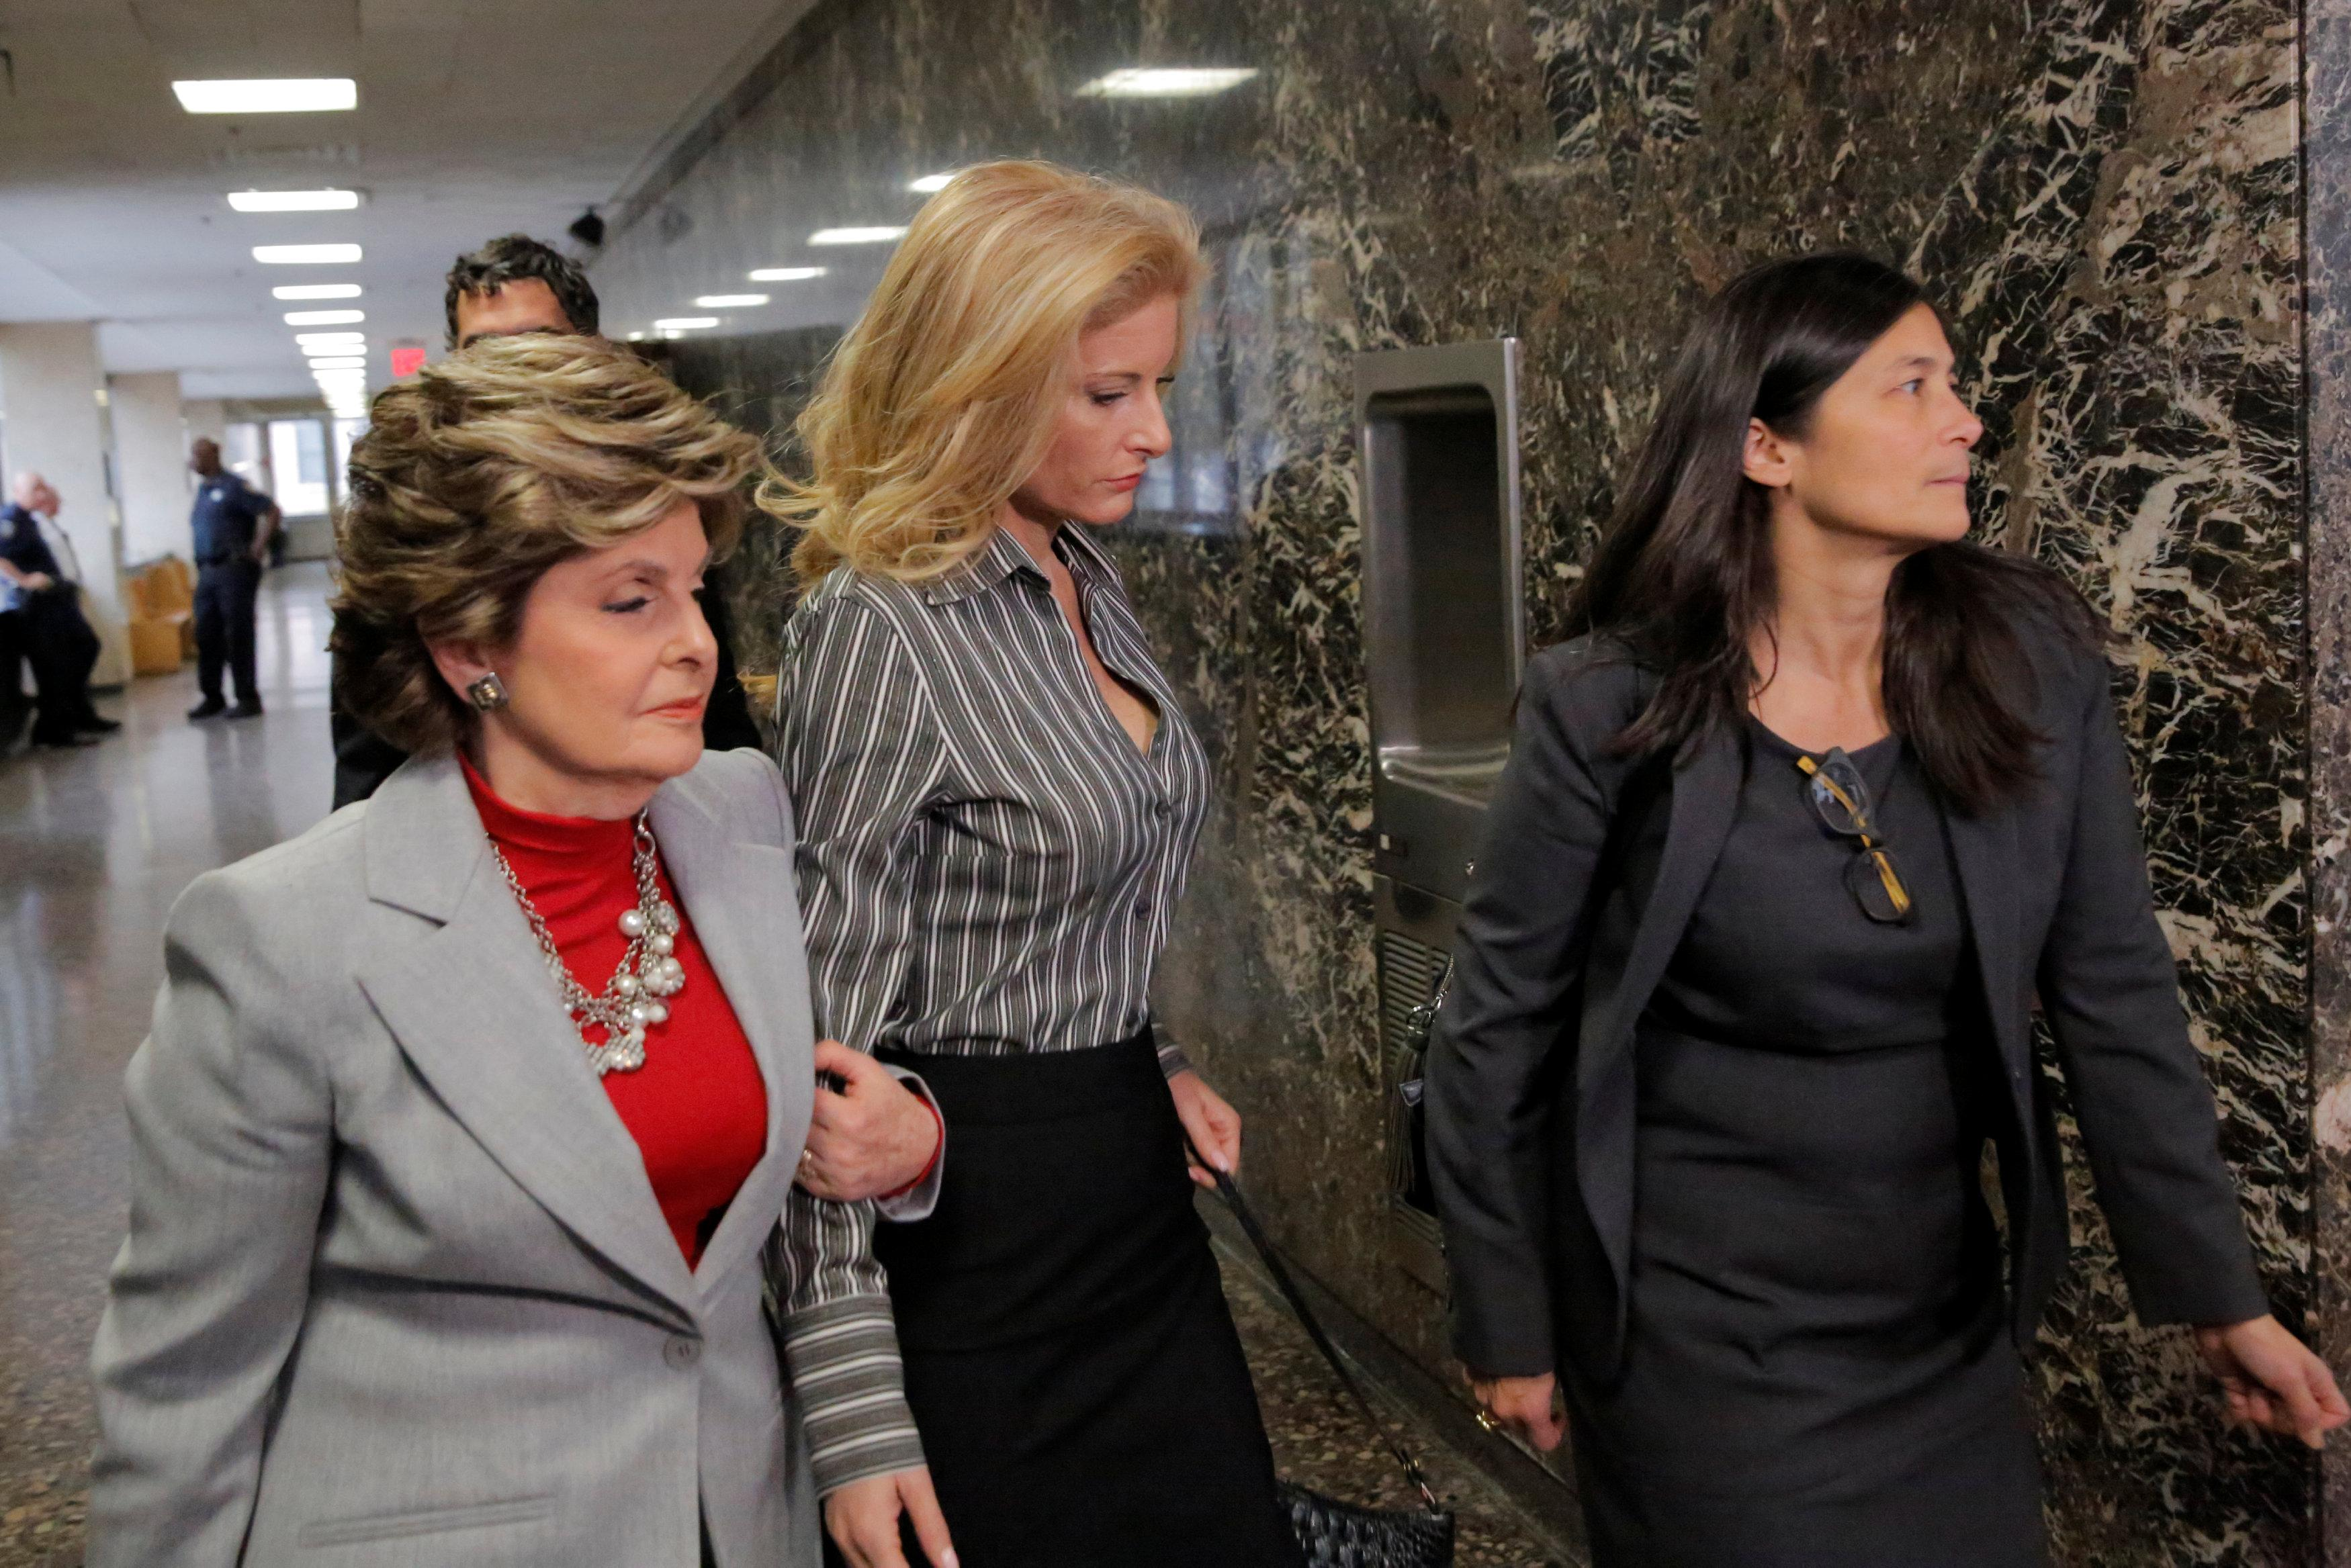 Summer Zervos (C), a former contestant on The Apprentice, arrives at New York State Supreme Court with attorney Gloria Allred (L) as a judge considers throwing out a defamation case against U.S. President Donald Trump, in Manhattan, New York City, U.S., December 5, 2017.  Andrew Kelly